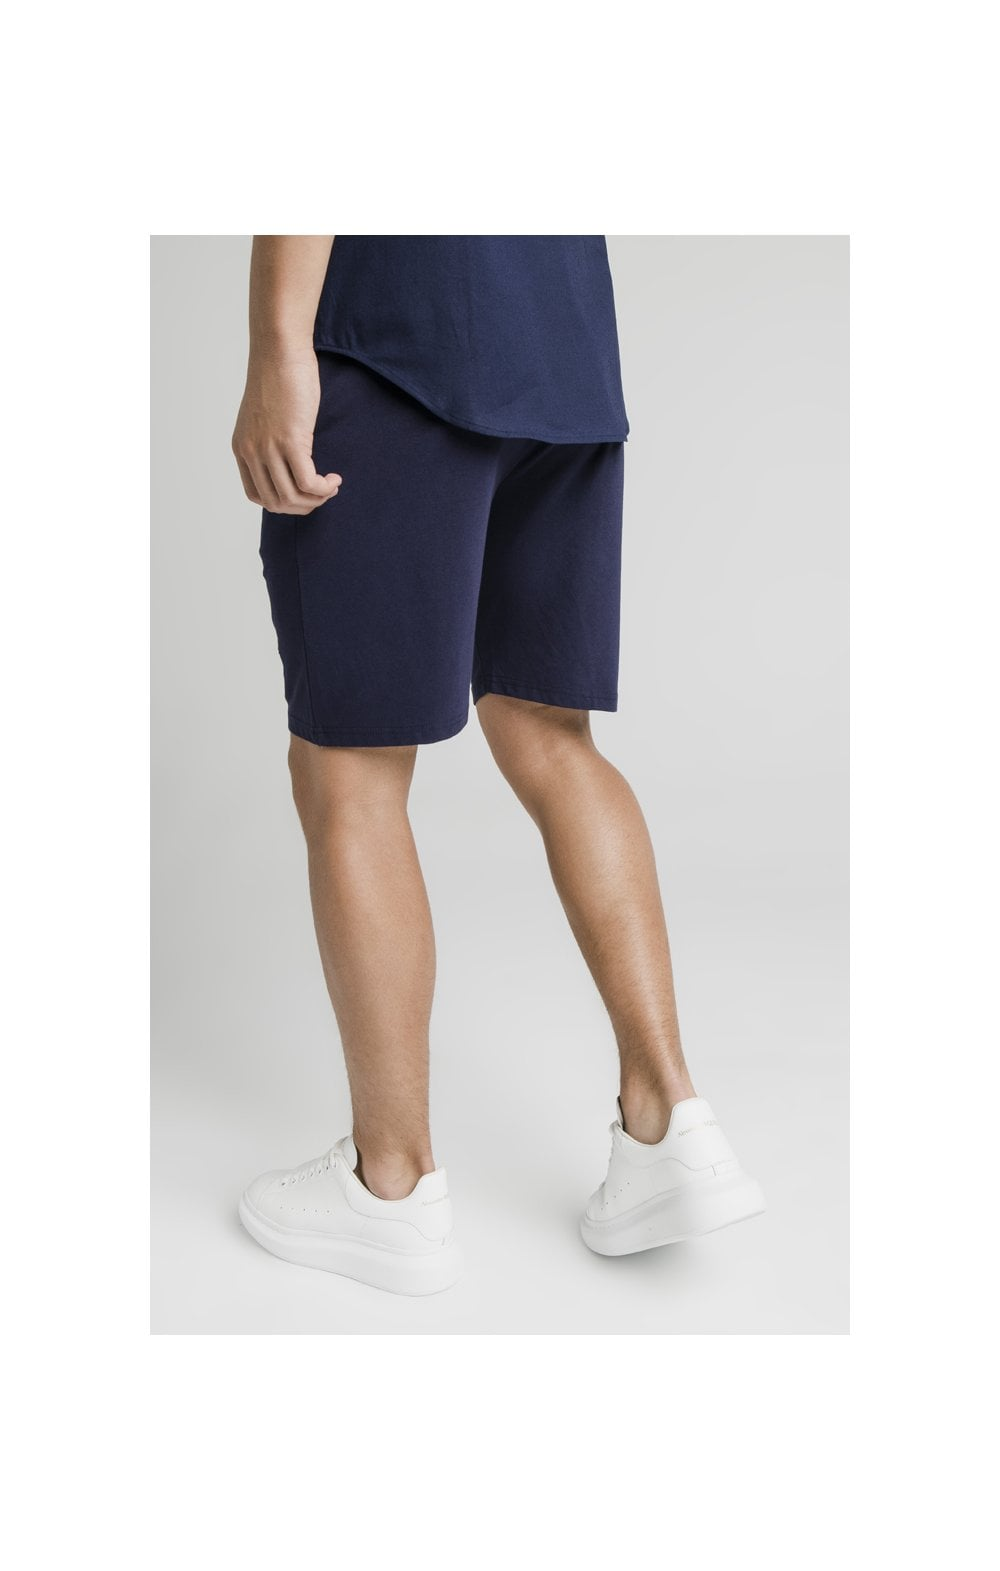 Illusive London Side Tape Jersey Shorts - Navy (3)